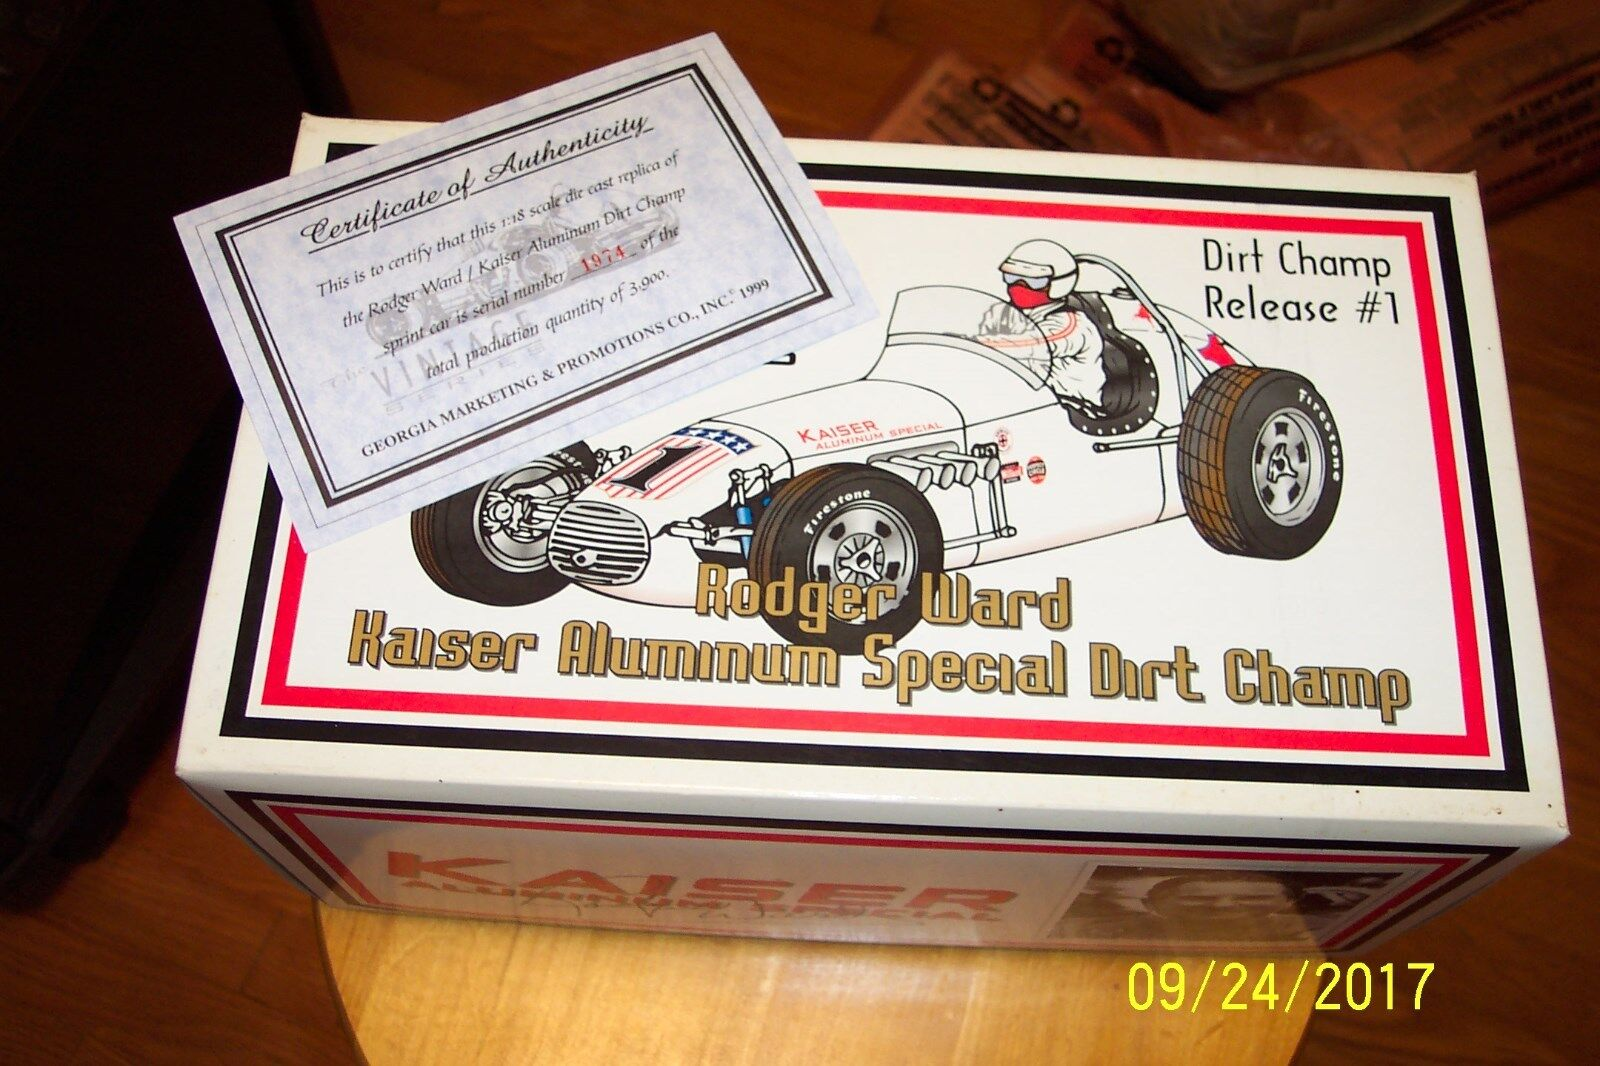 1 18 Die Cast GMP VINTAGE LE DIRT CHAMP  1 1 OF 3900 Rodger Ward SPECIAL.  1